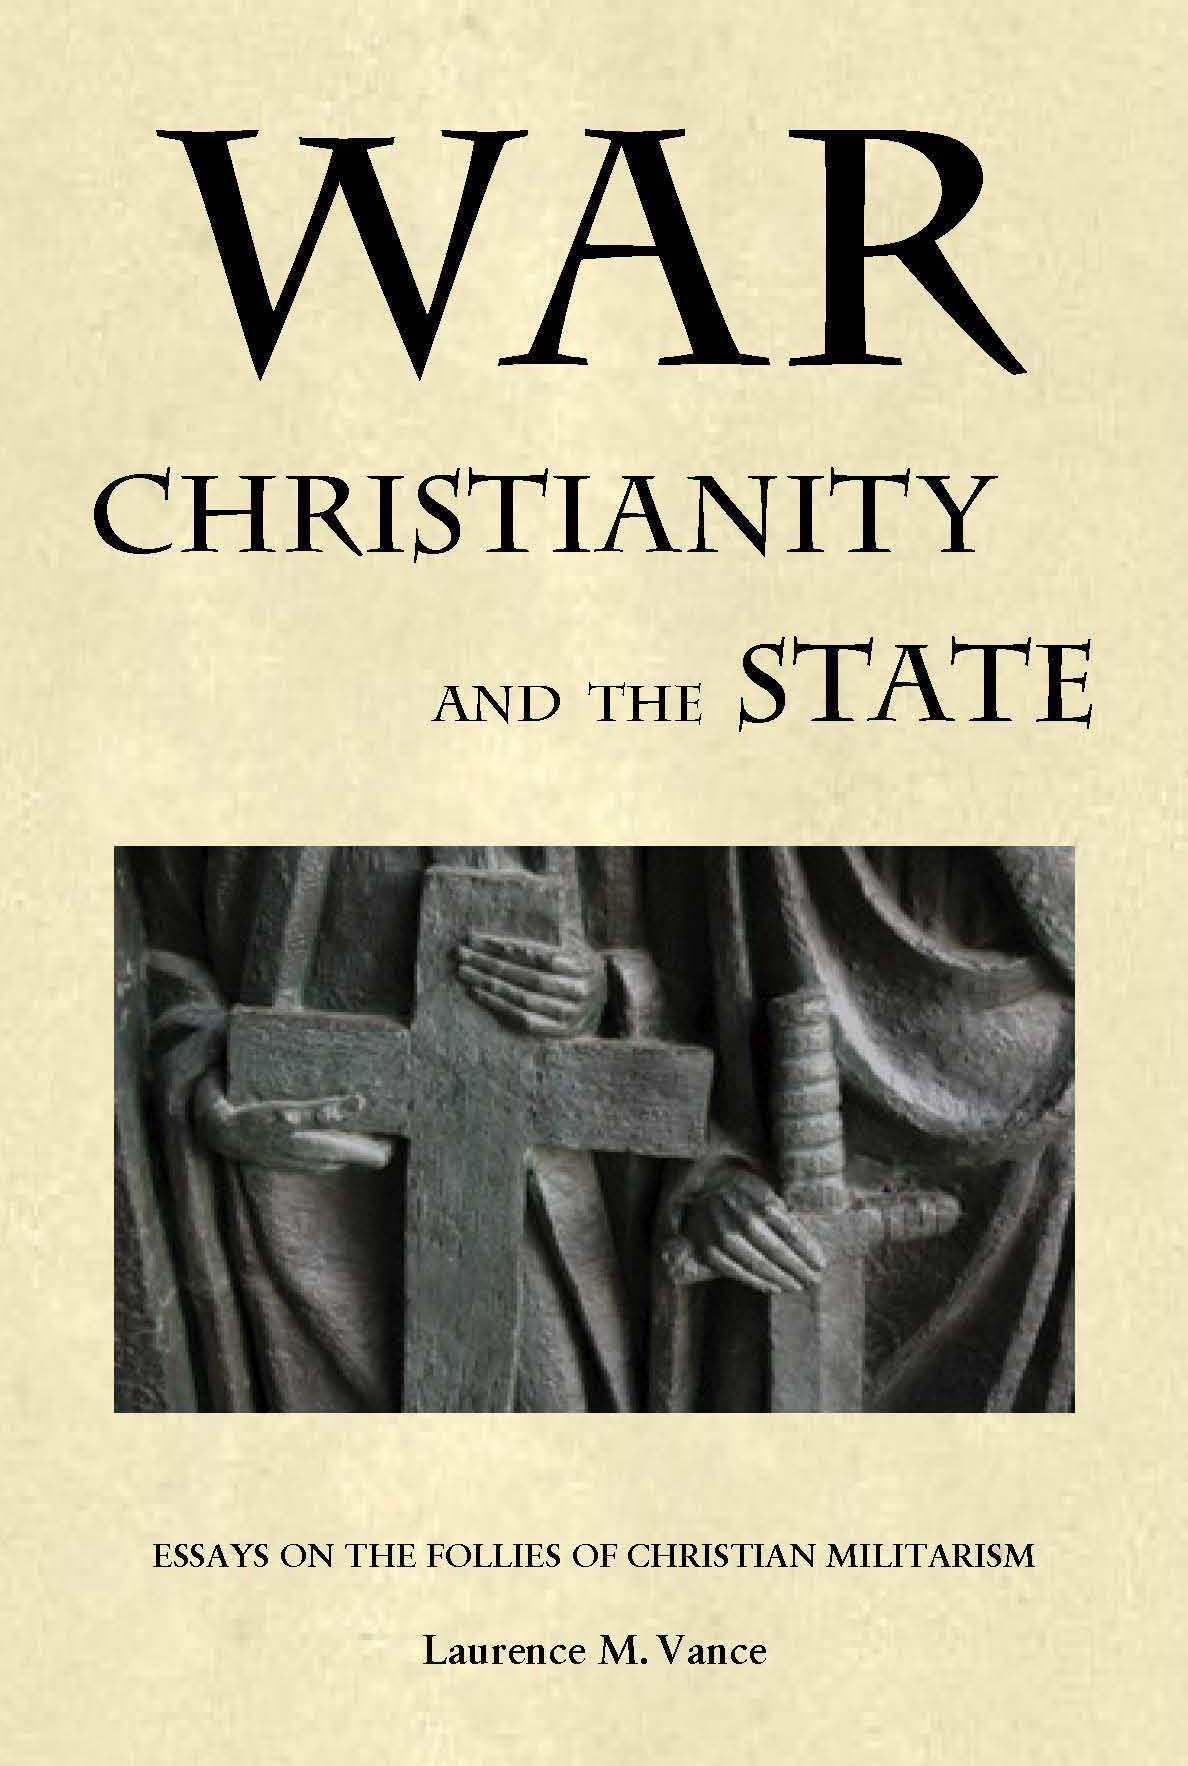 War, Christianity, and the State, 416 pages, paperback, $19.95